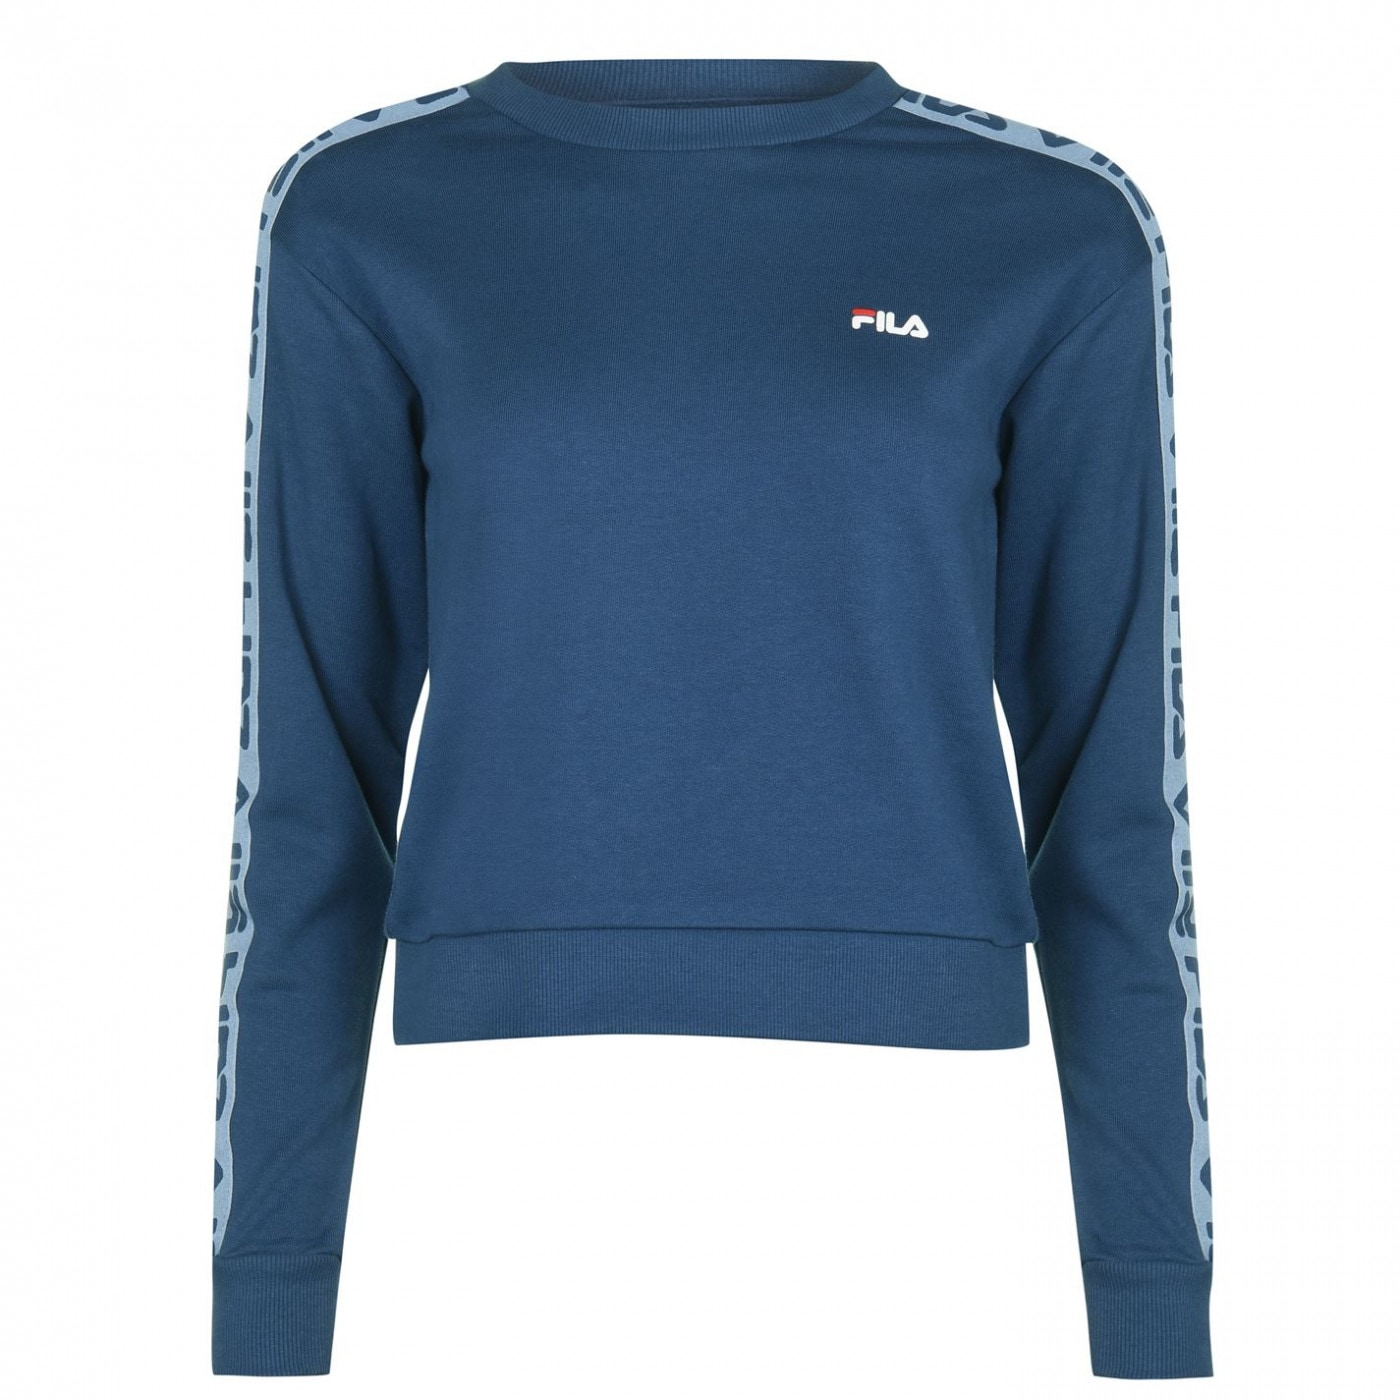 Fila Tamarr Sweatshirt Ladies